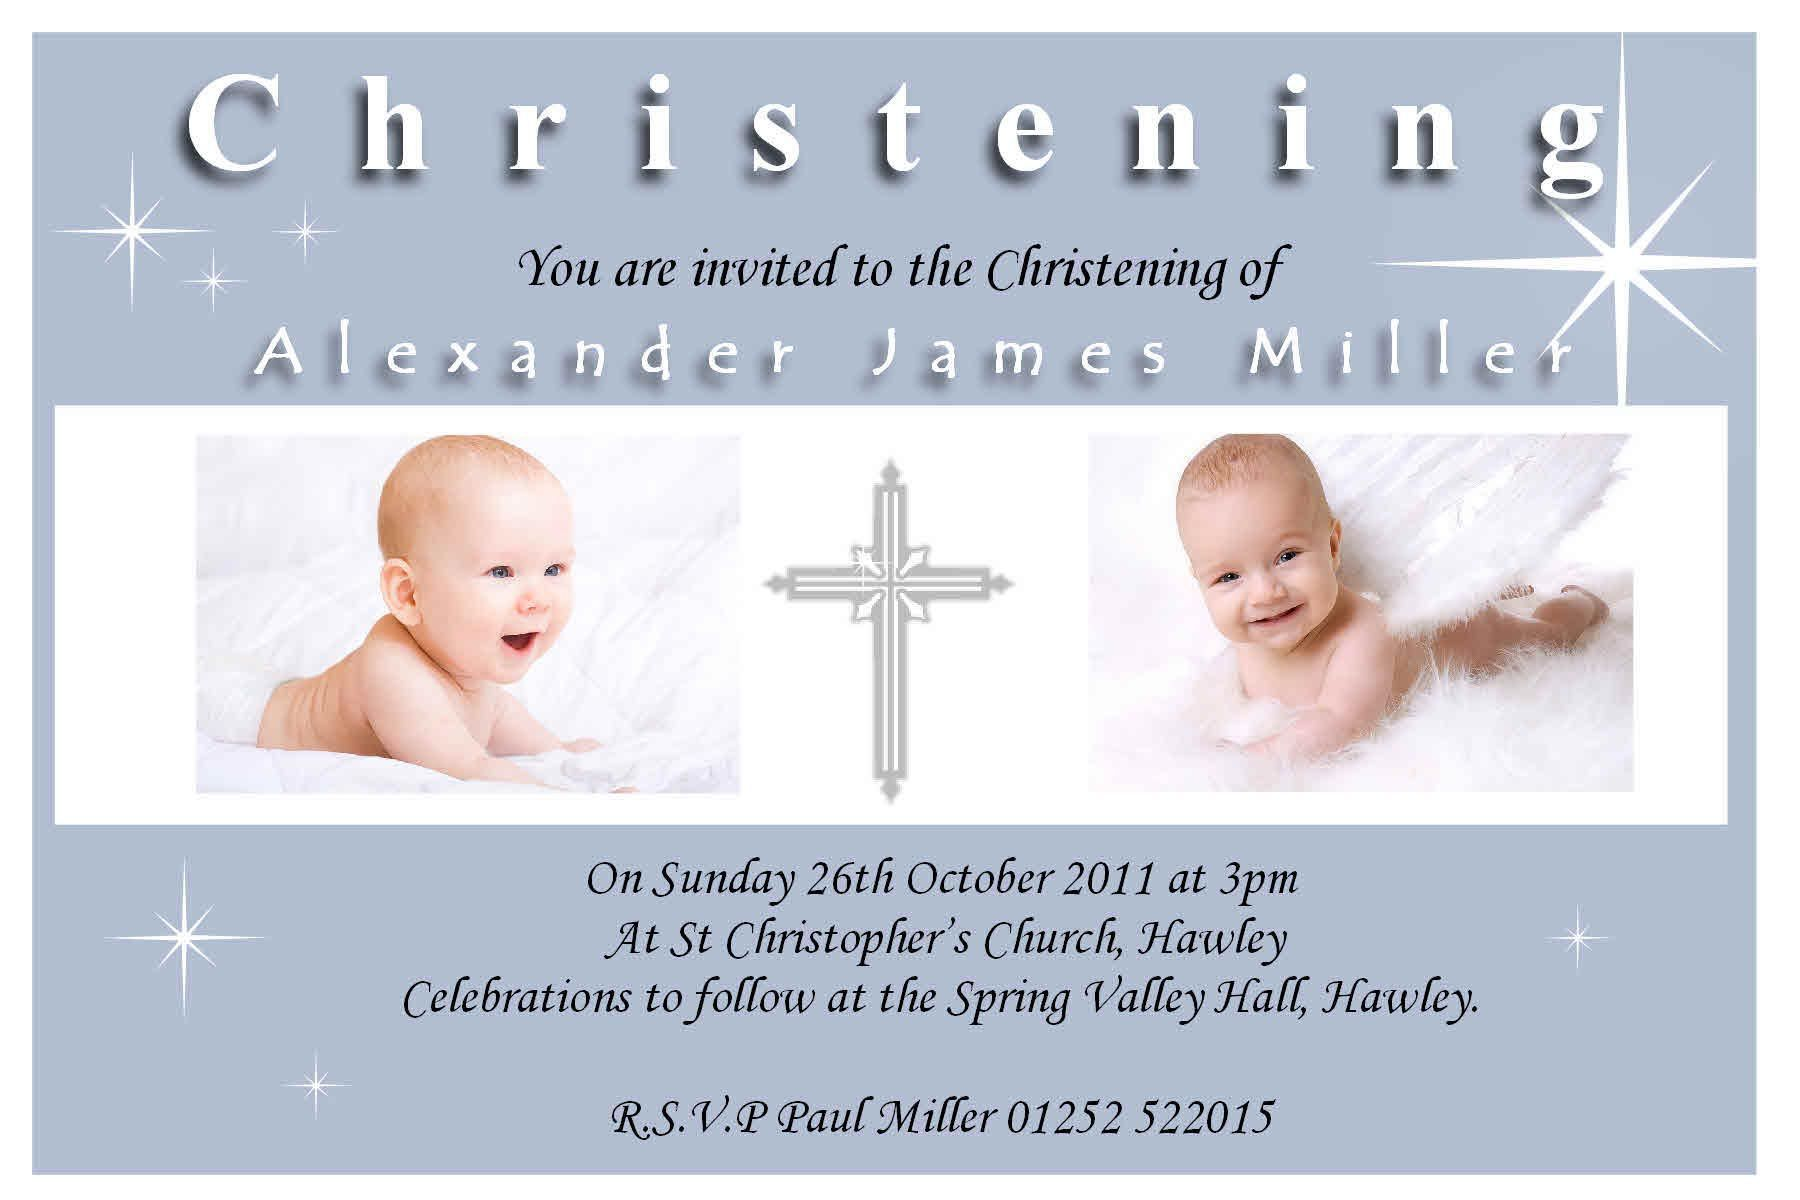 Baptism invitation template for baby boy baptism invitations invitation card for christening invitation card for christening boy superb invitation superb invitation stopboris Images